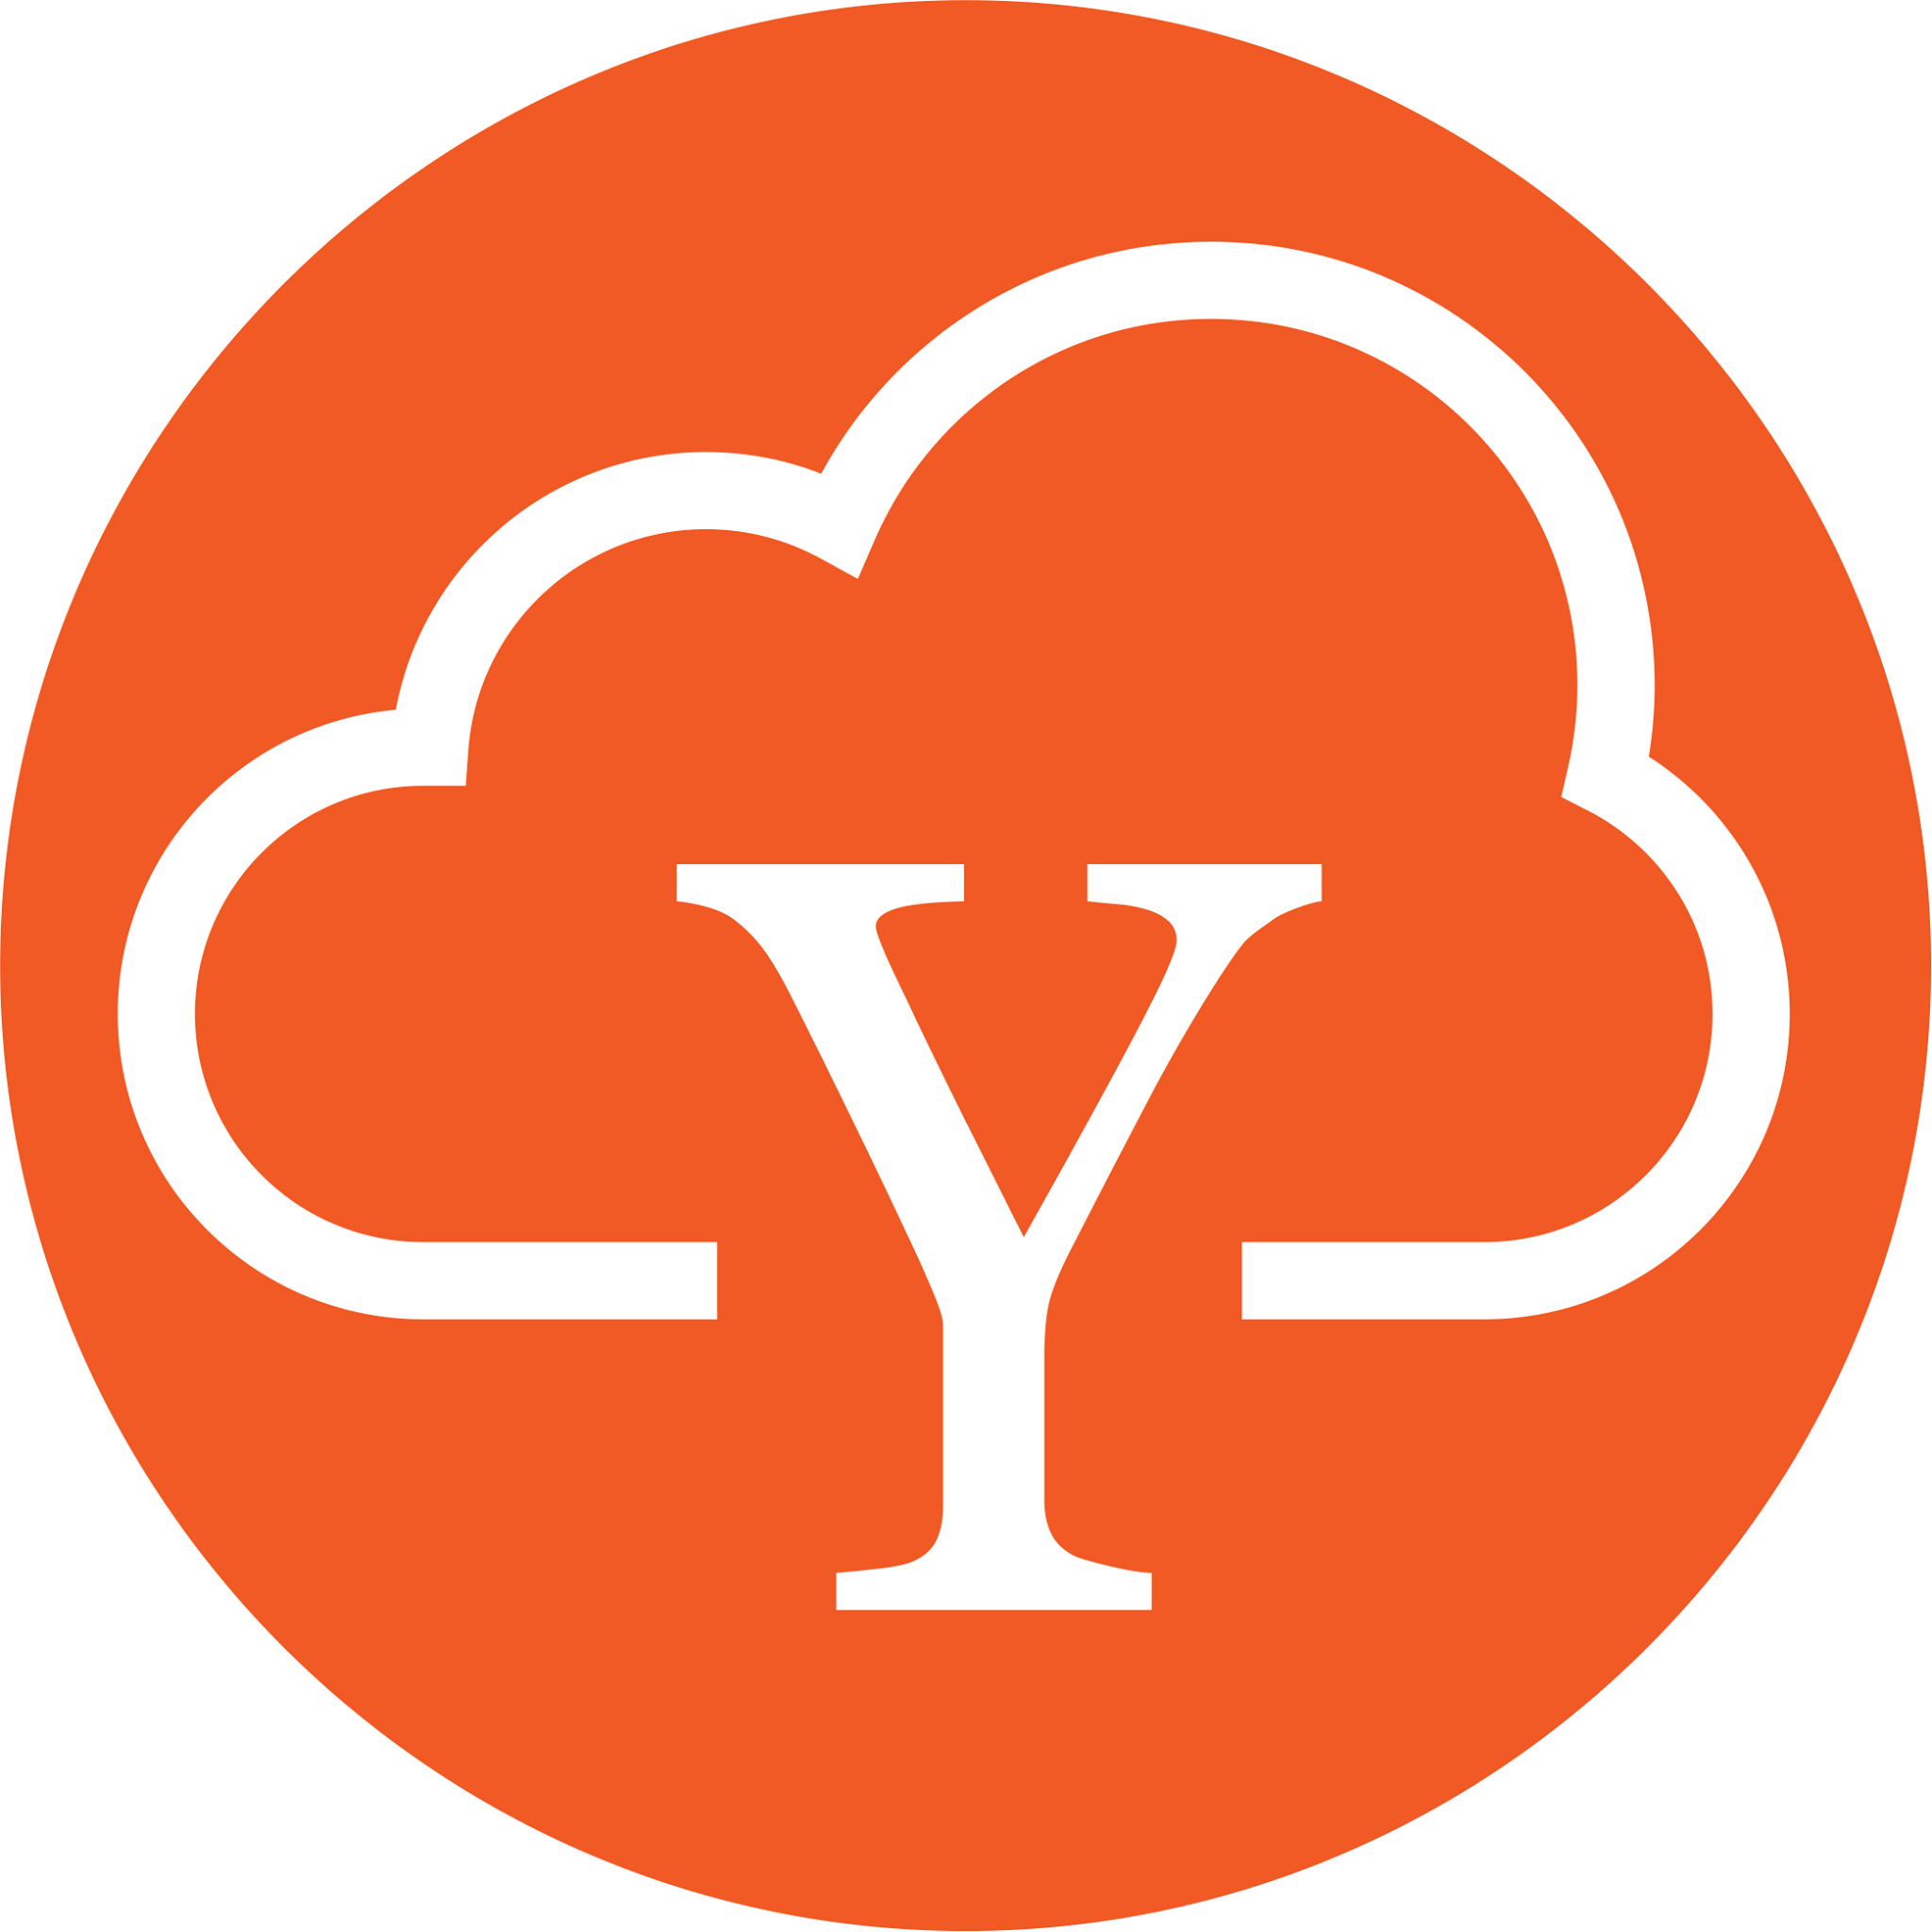 Zen of ERIC KIM why app. Orange logo with y and cloud thinking bubble